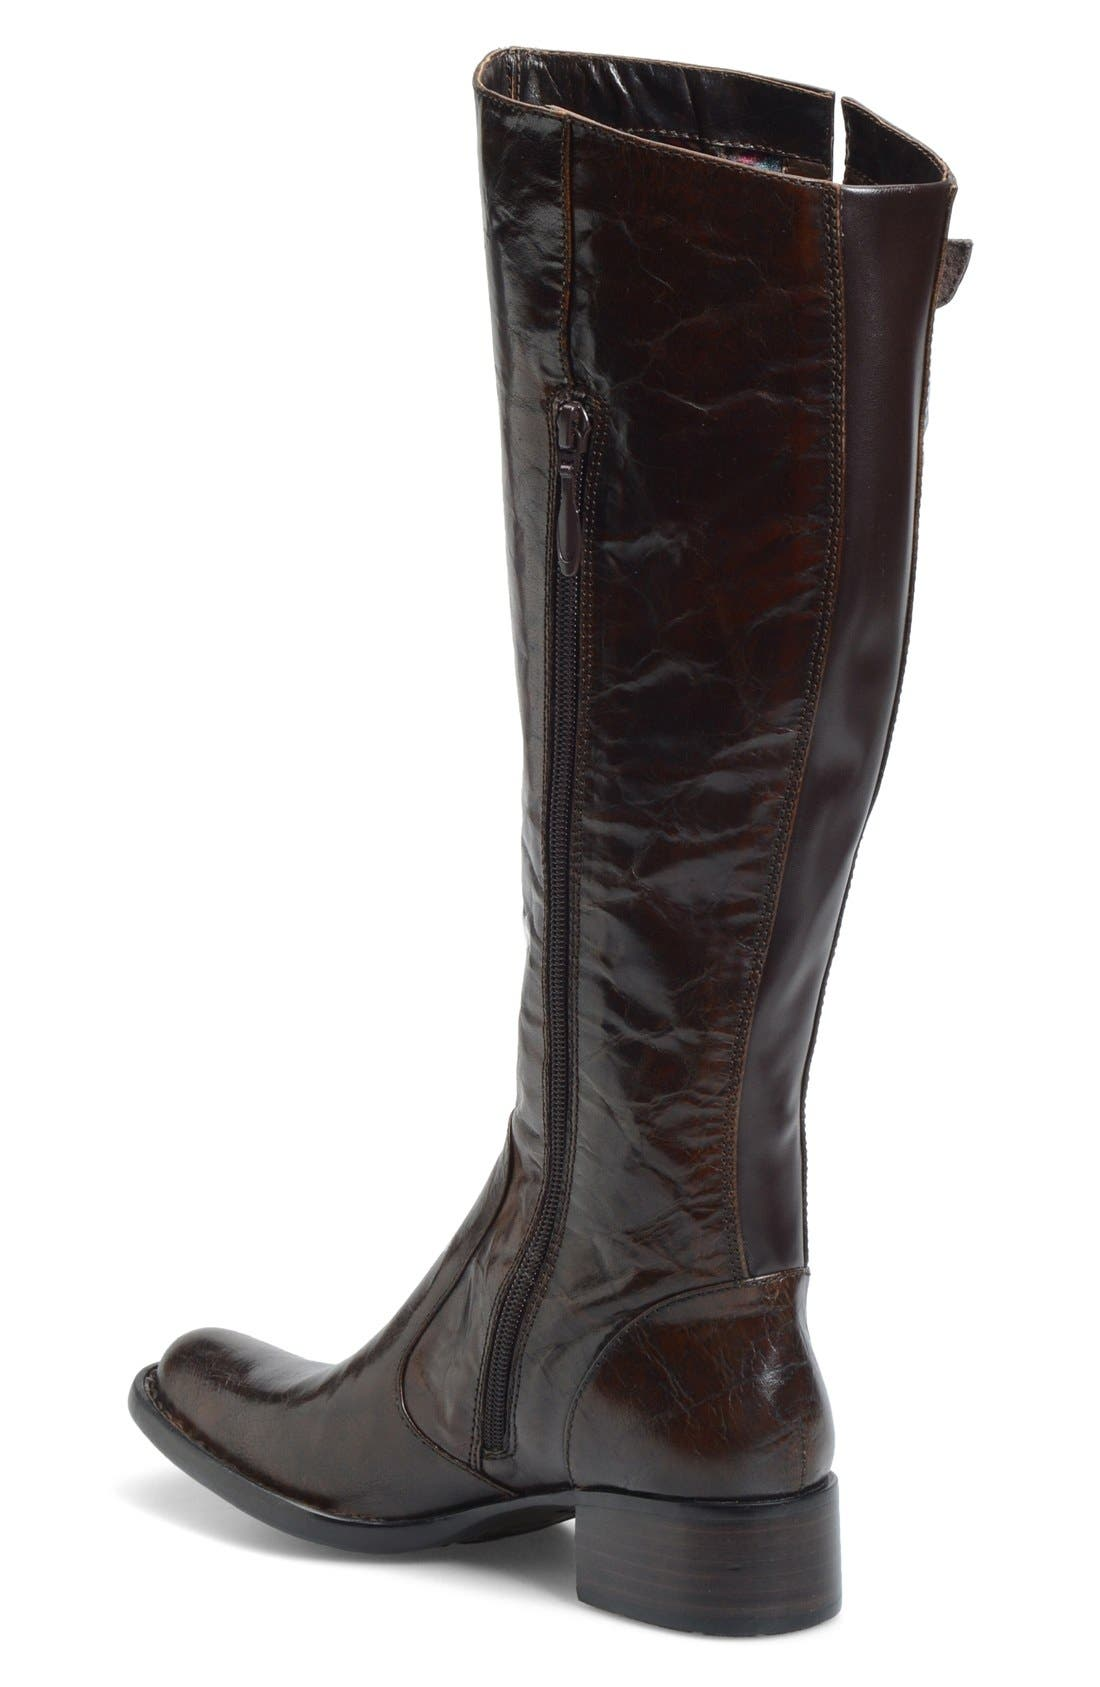 Alternate Image 2  - Crown by Børn 'Roxie' Boot (Women) (Wide Calf) (Nordstrom Exclusive)